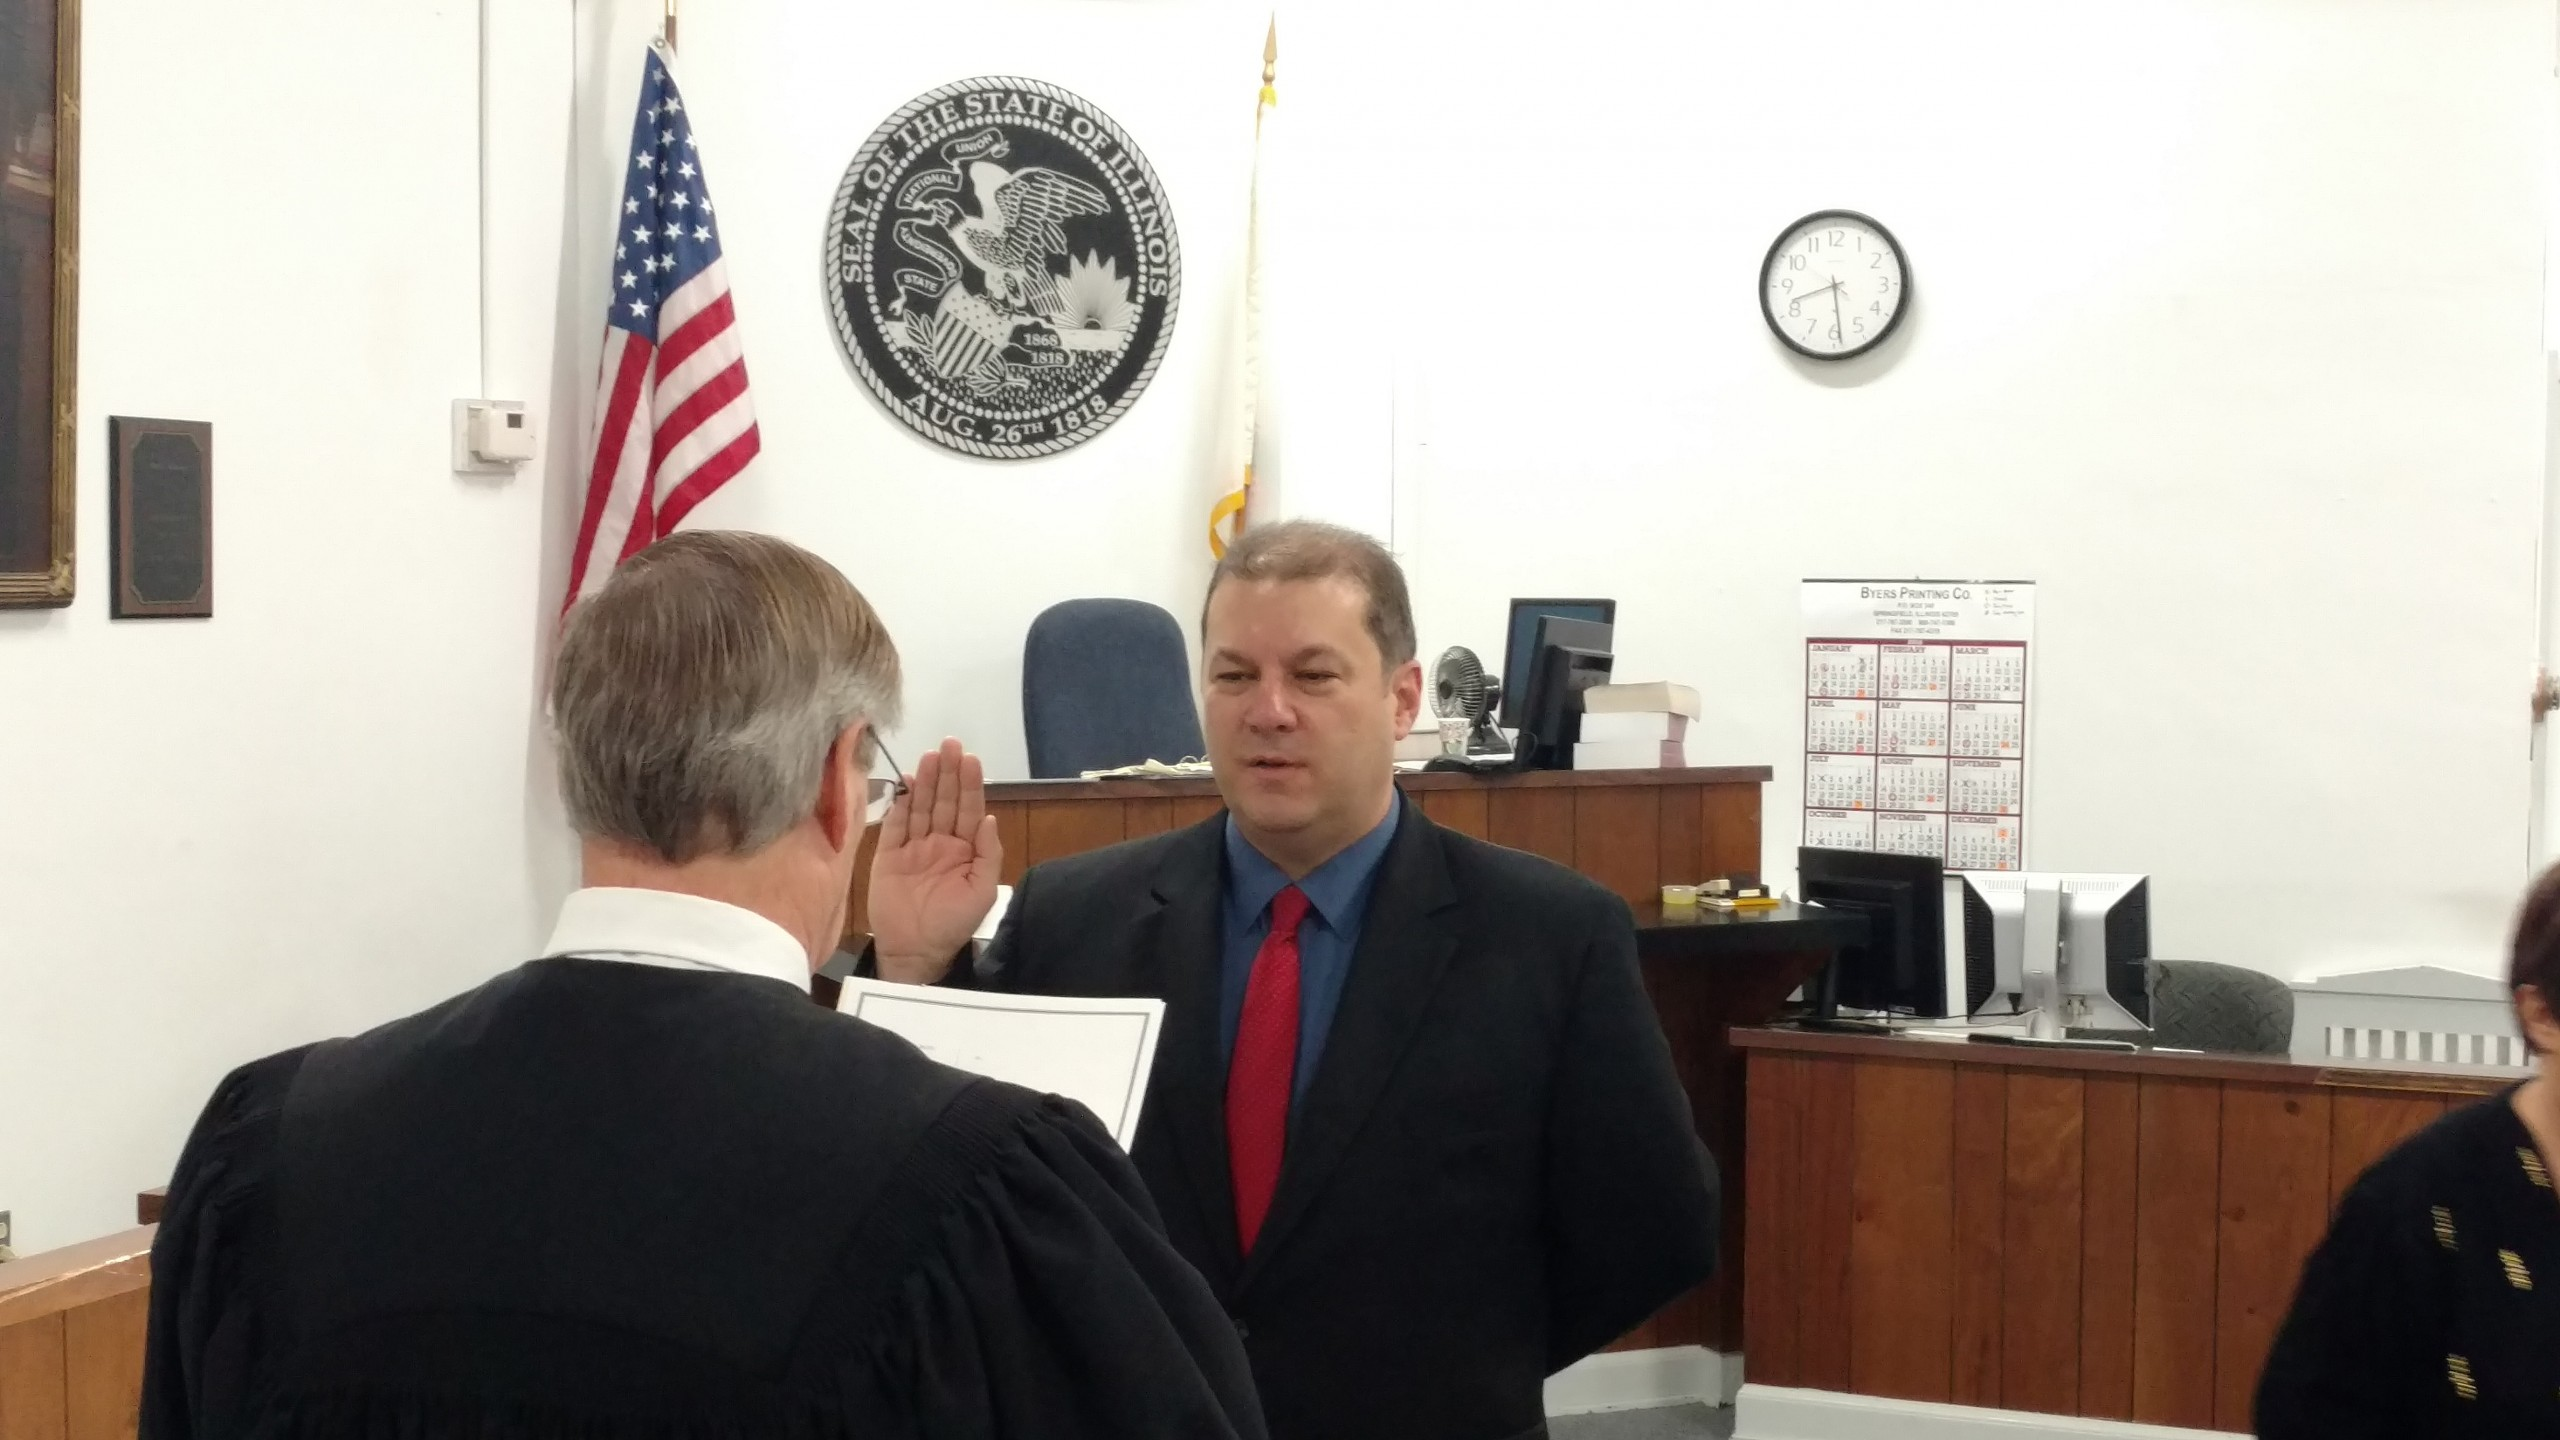 Joshua Morrison takes oath to serve 2nd term as Fayette County State's Attorney